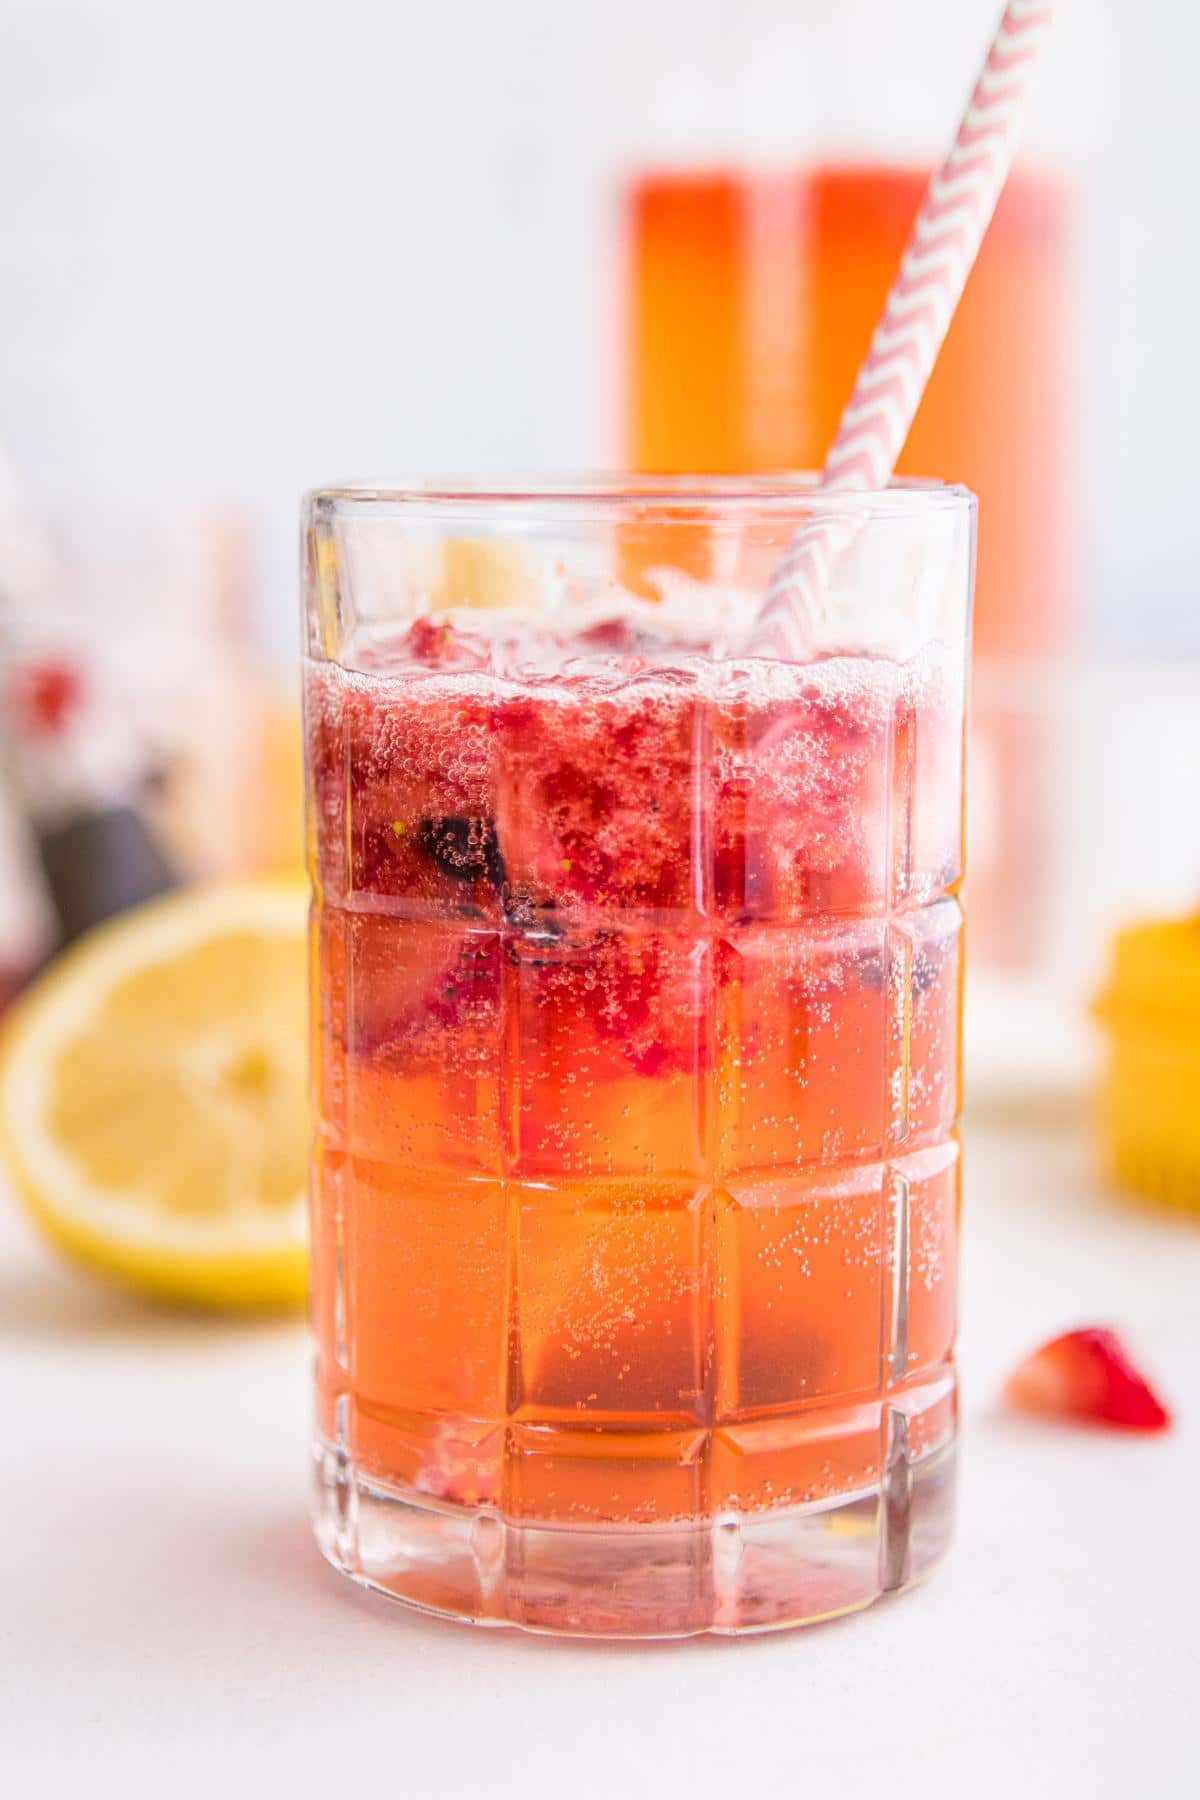 sparkling berry lemonade in a glass with a pink straw